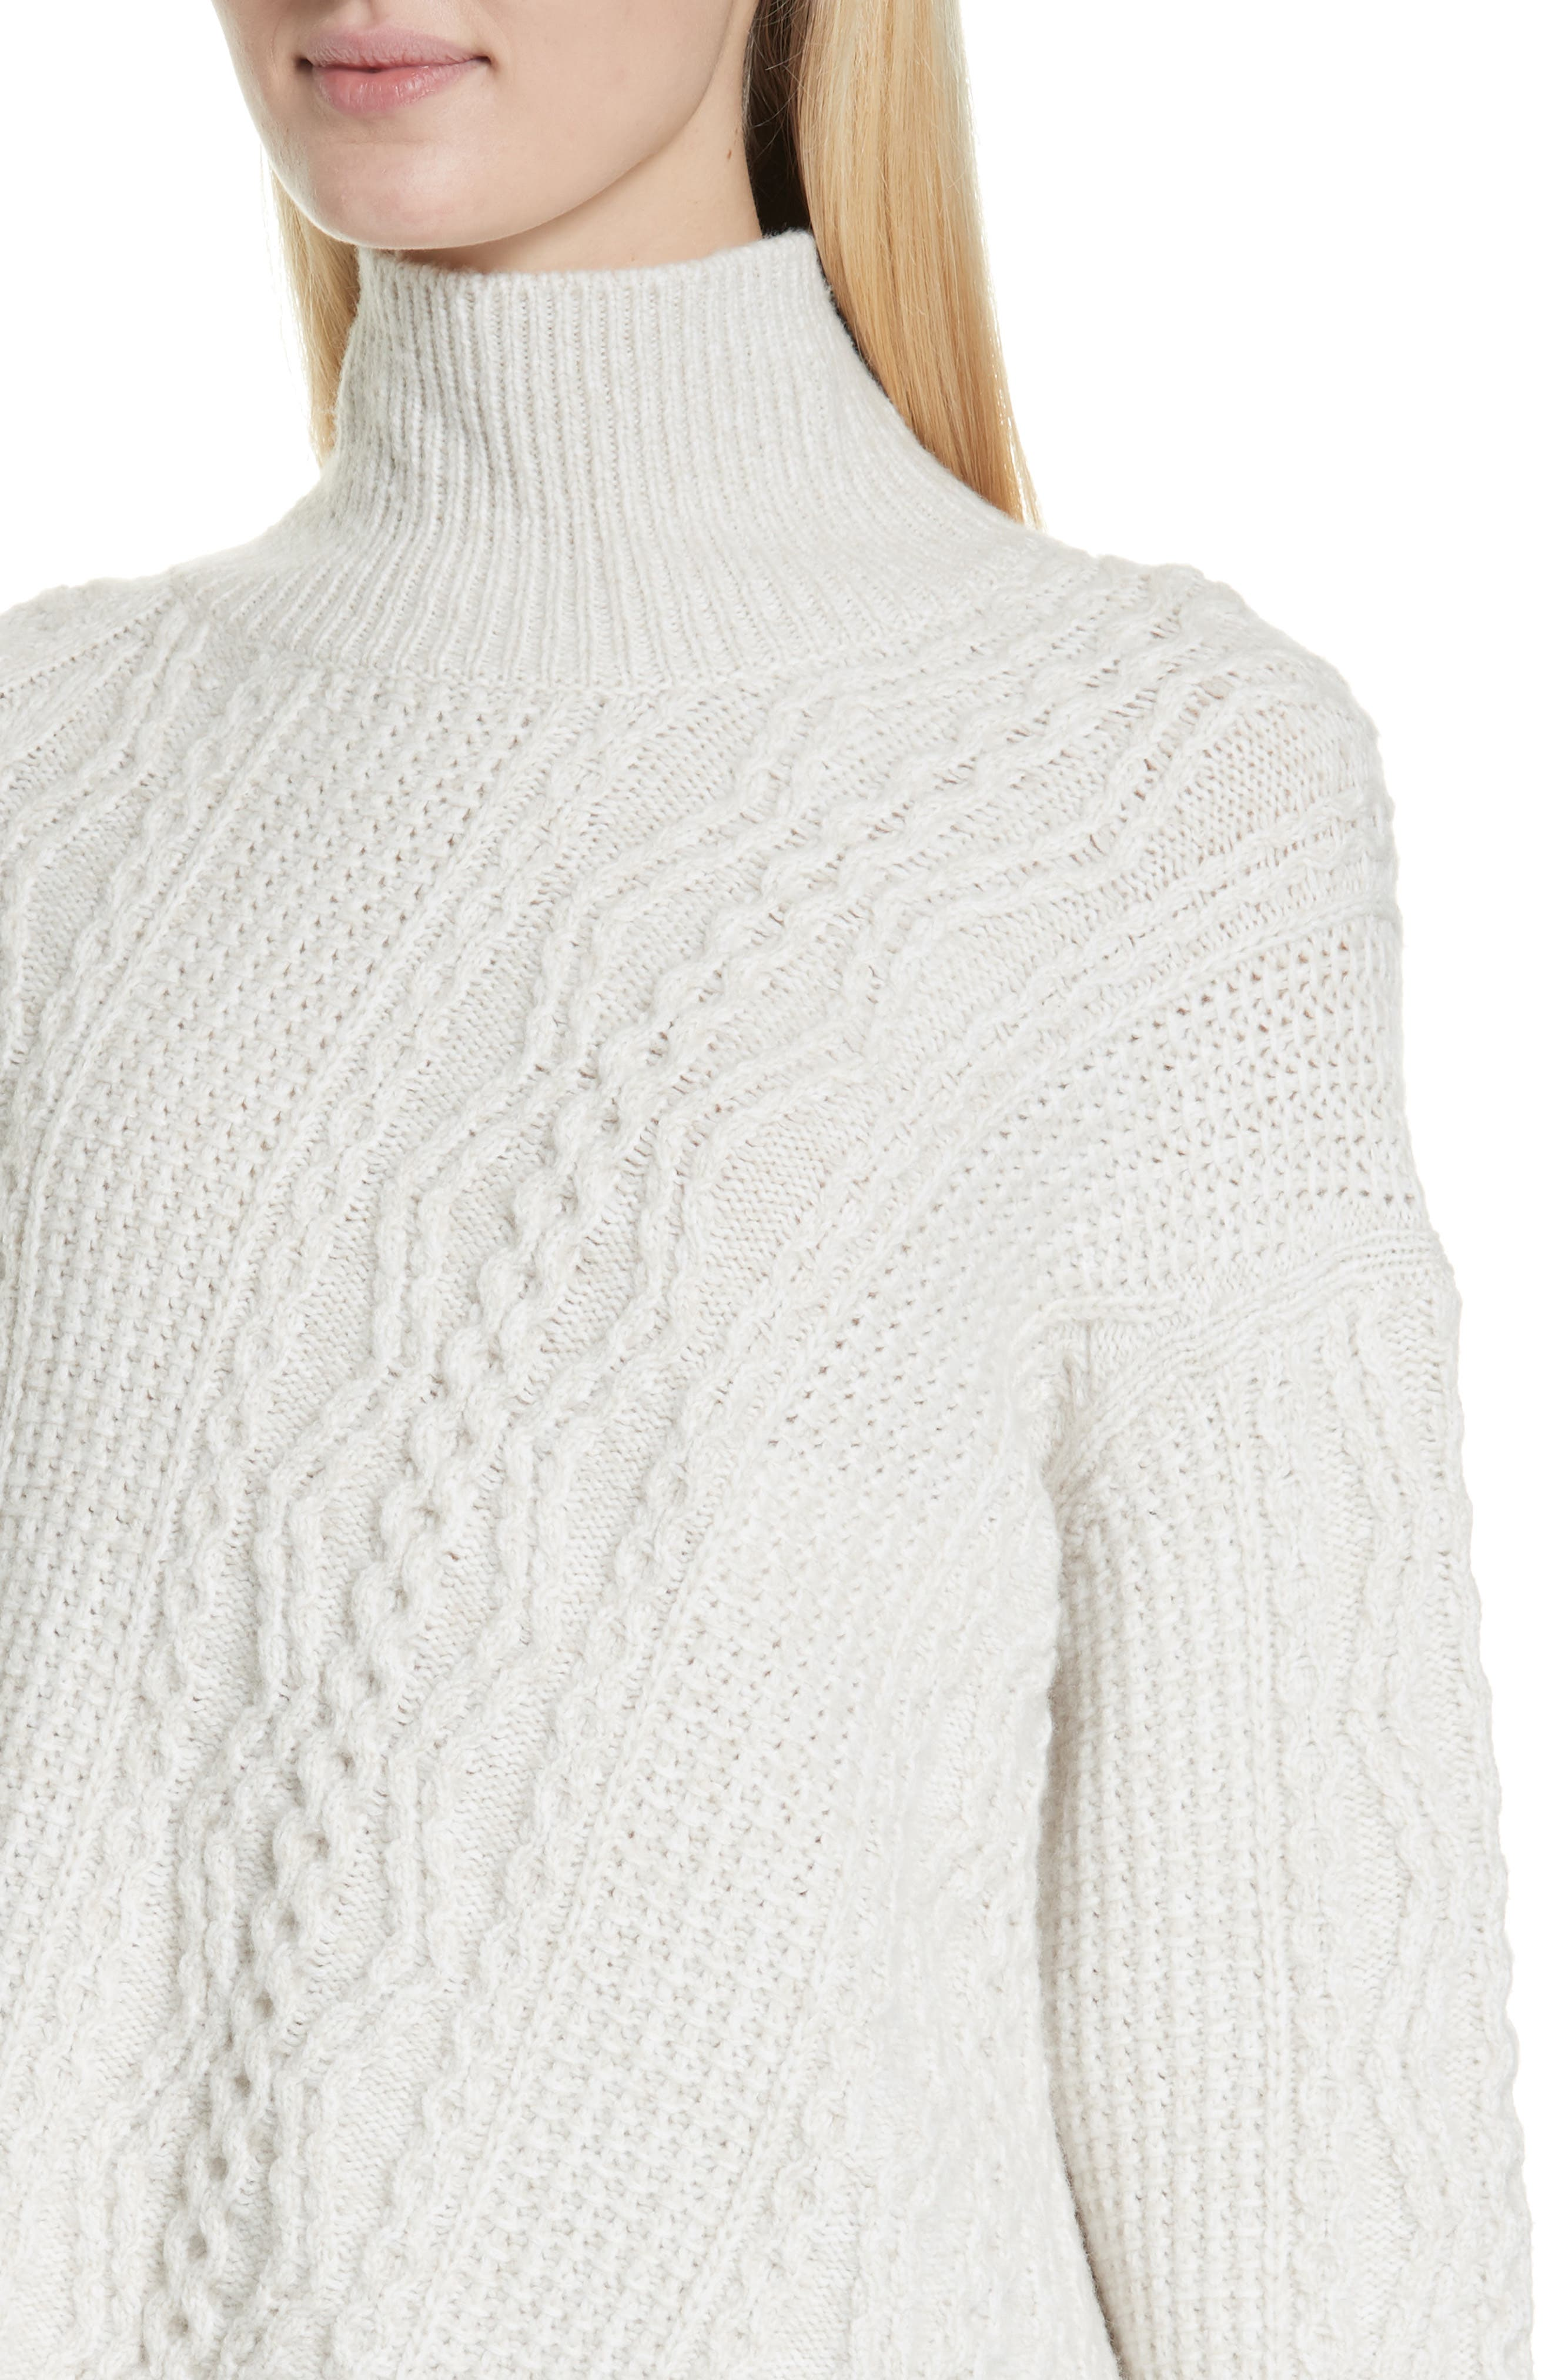 Diagonal Cable Wool Blend Turtleneck Sweater,                             Alternate thumbnail 4, color,                             OFF WHITE/ MARZIPAN